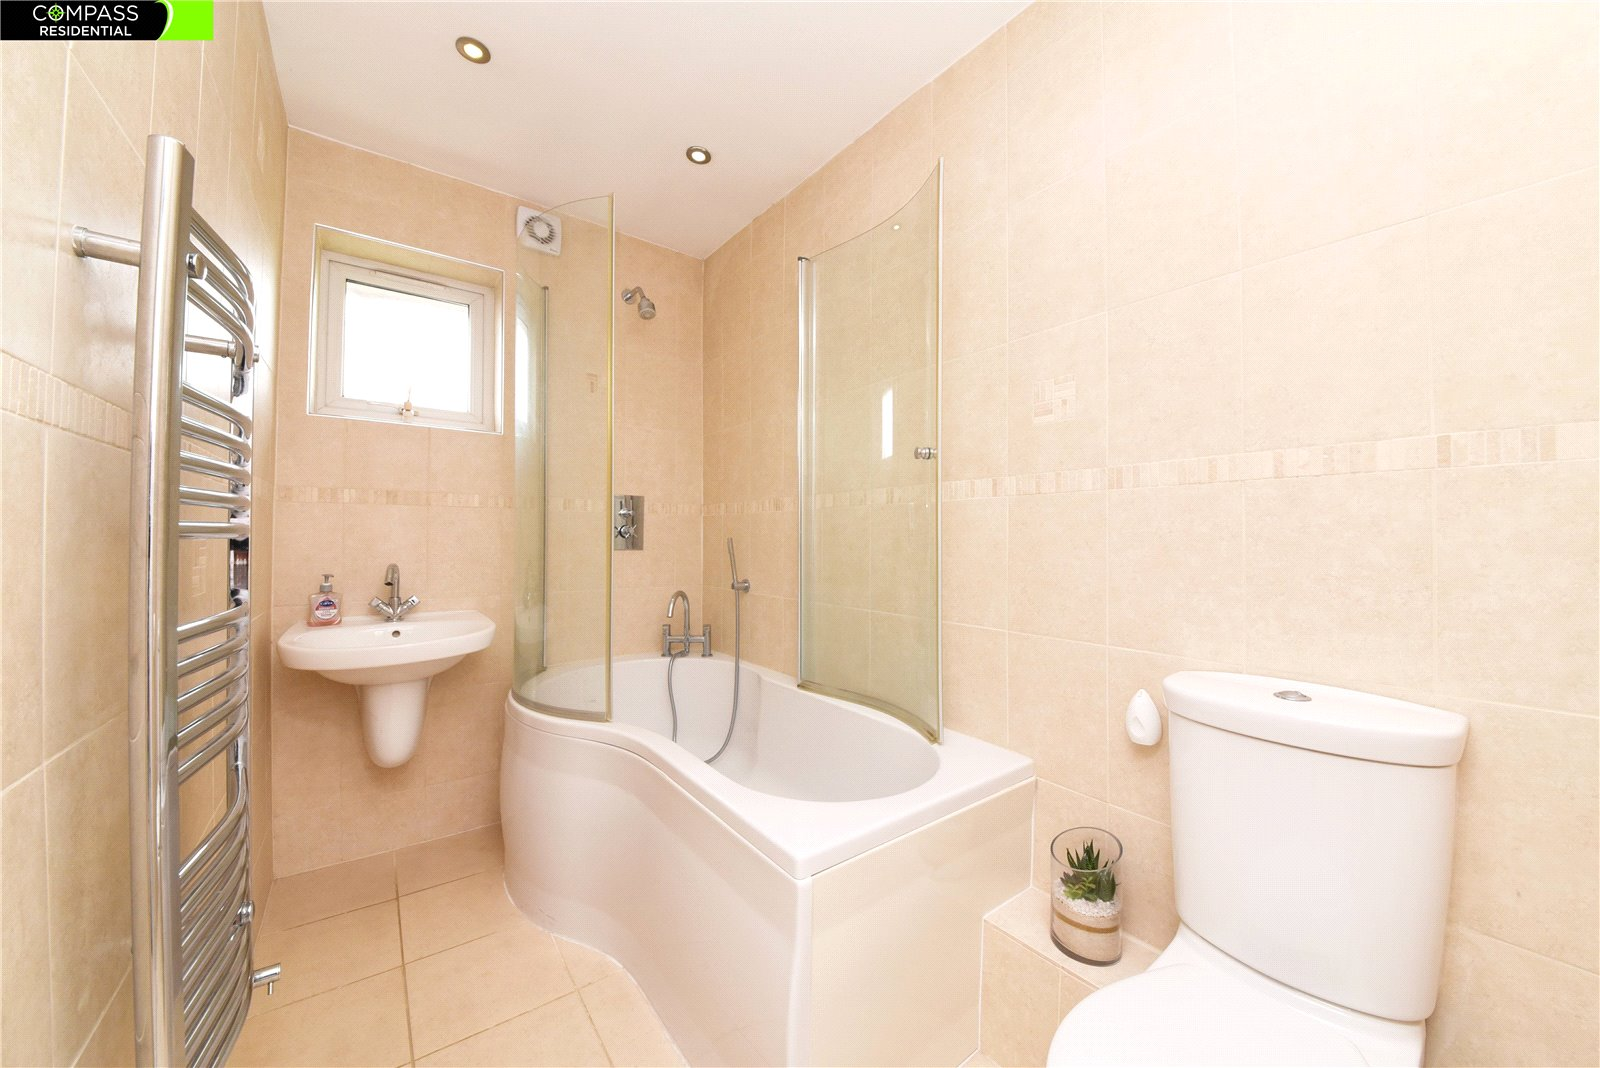 4 bed house for sale in Stanmore, HA7 3AZ  - Property Image 11